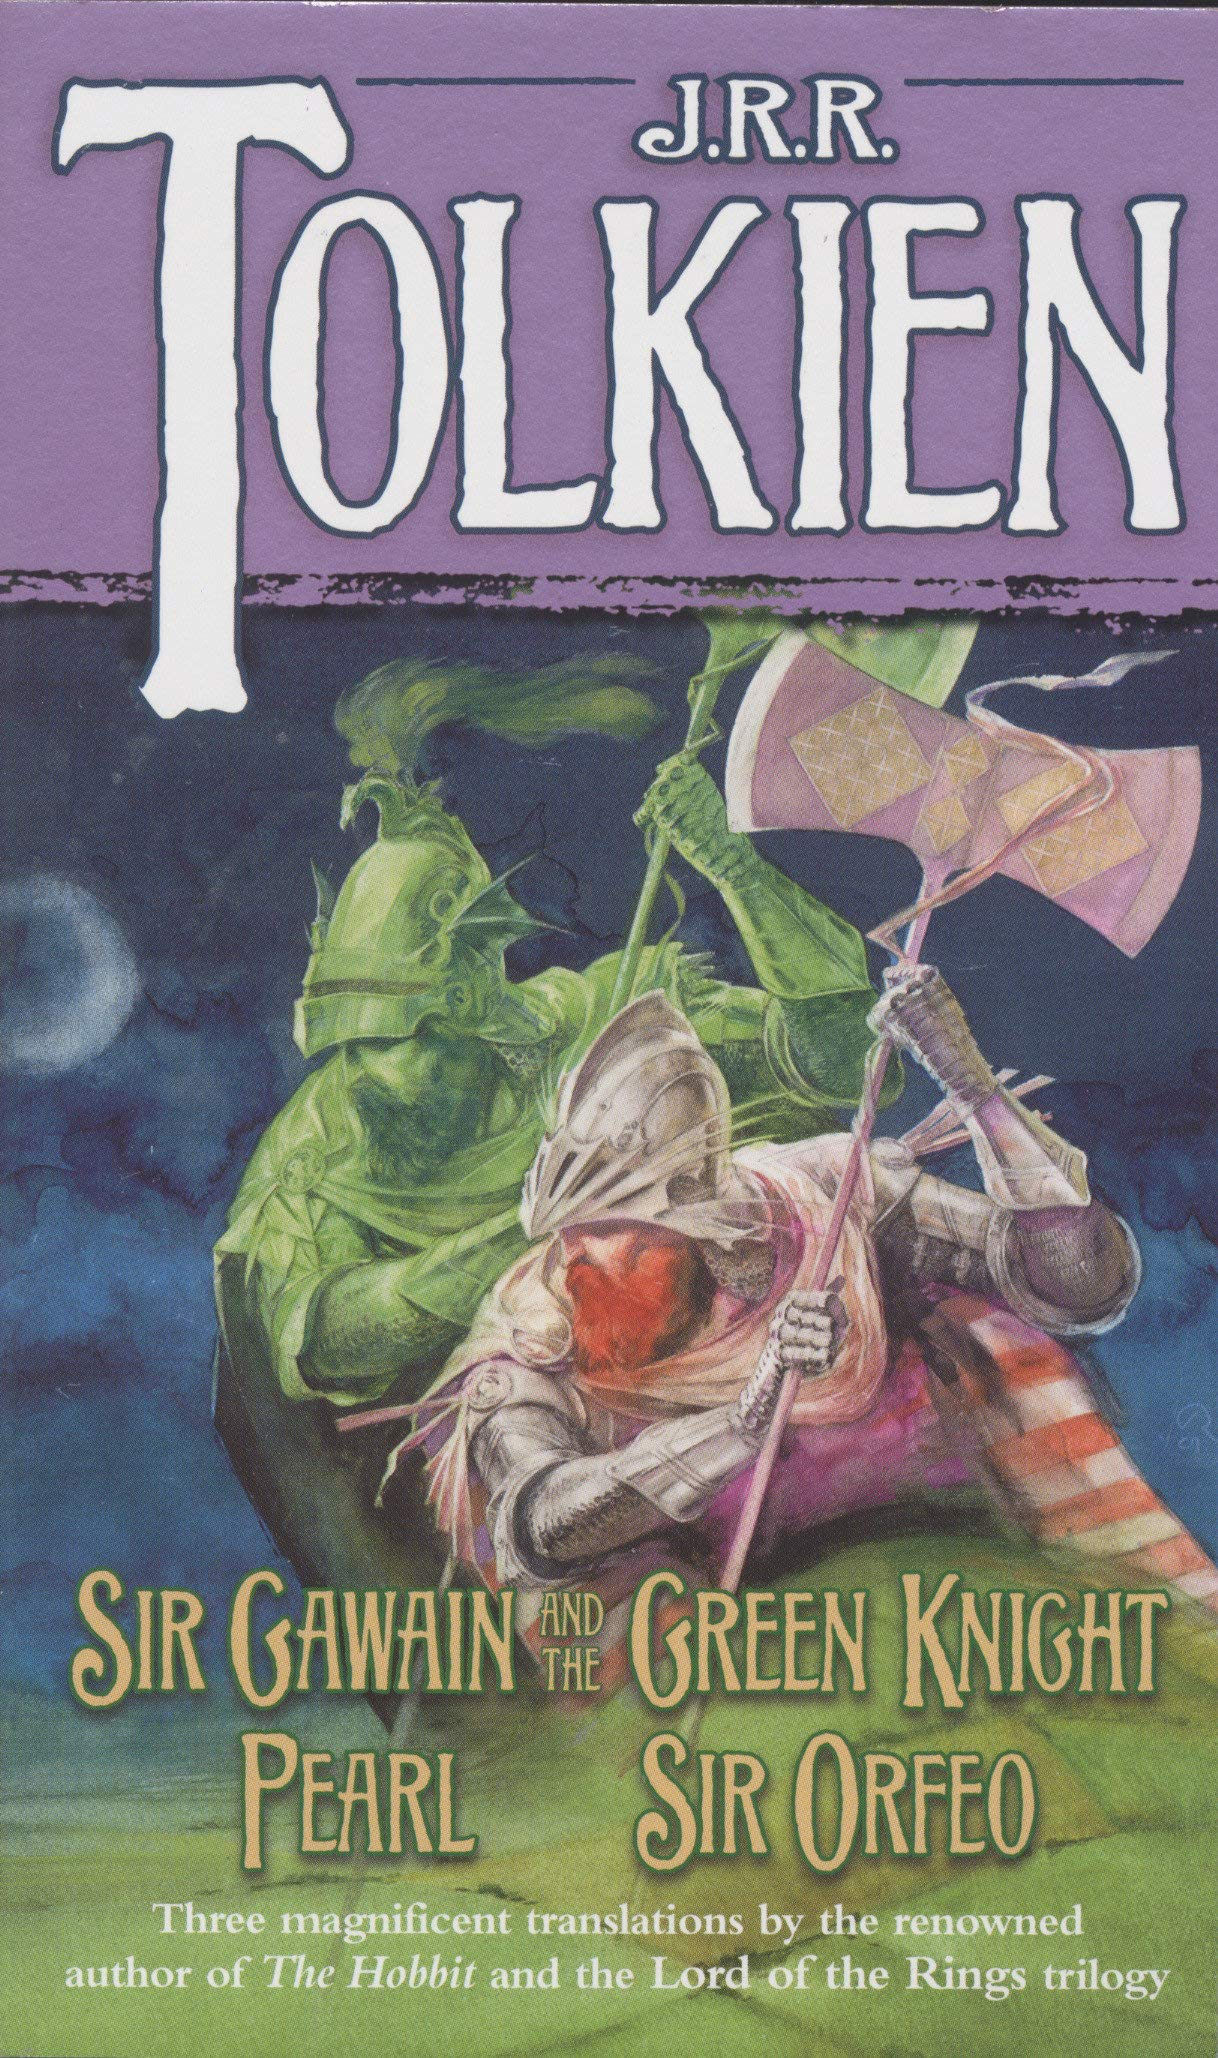 Sir gawain and the green knight pearl and sir orfeo jrr sir gawain and the green knight pearl and sir orfeo jrr tolkien 9780345277602 amazon books fandeluxe Images